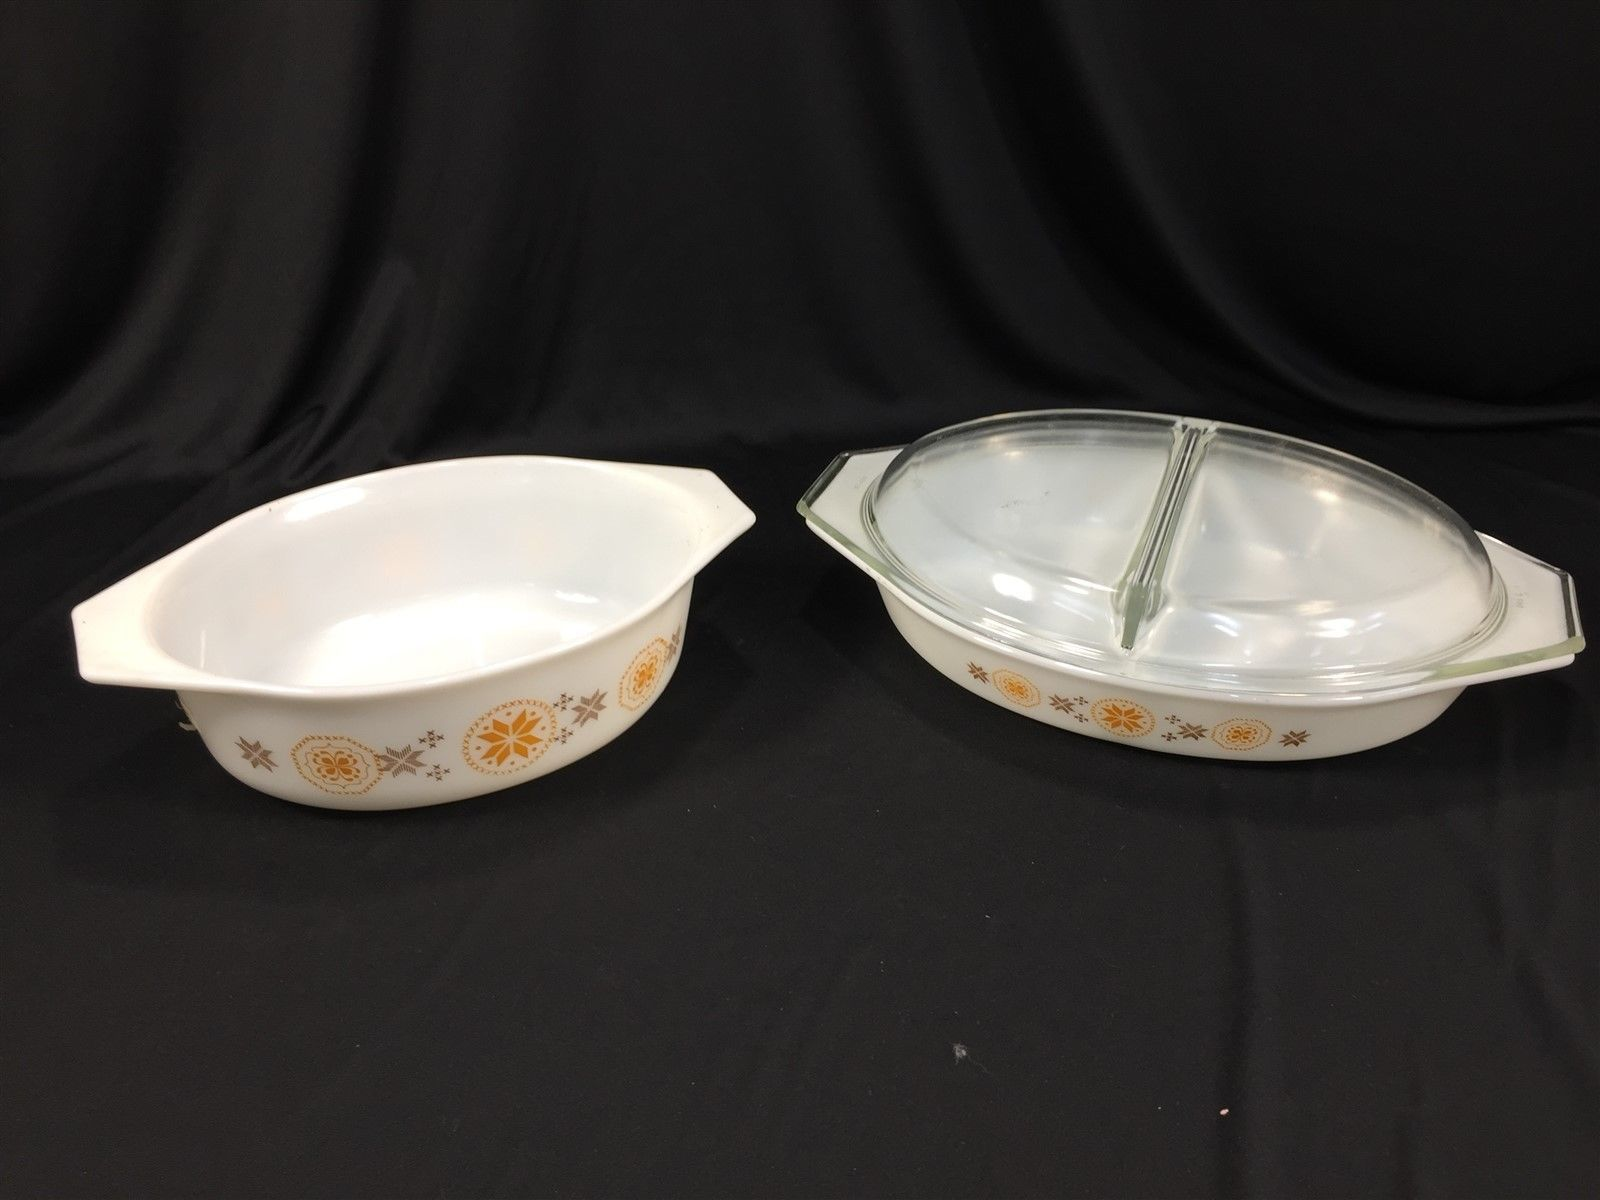 1.5 Quart Vintage PYREX Divided Baking Dish Town /& Country Pattern 1960s Casserole Dish